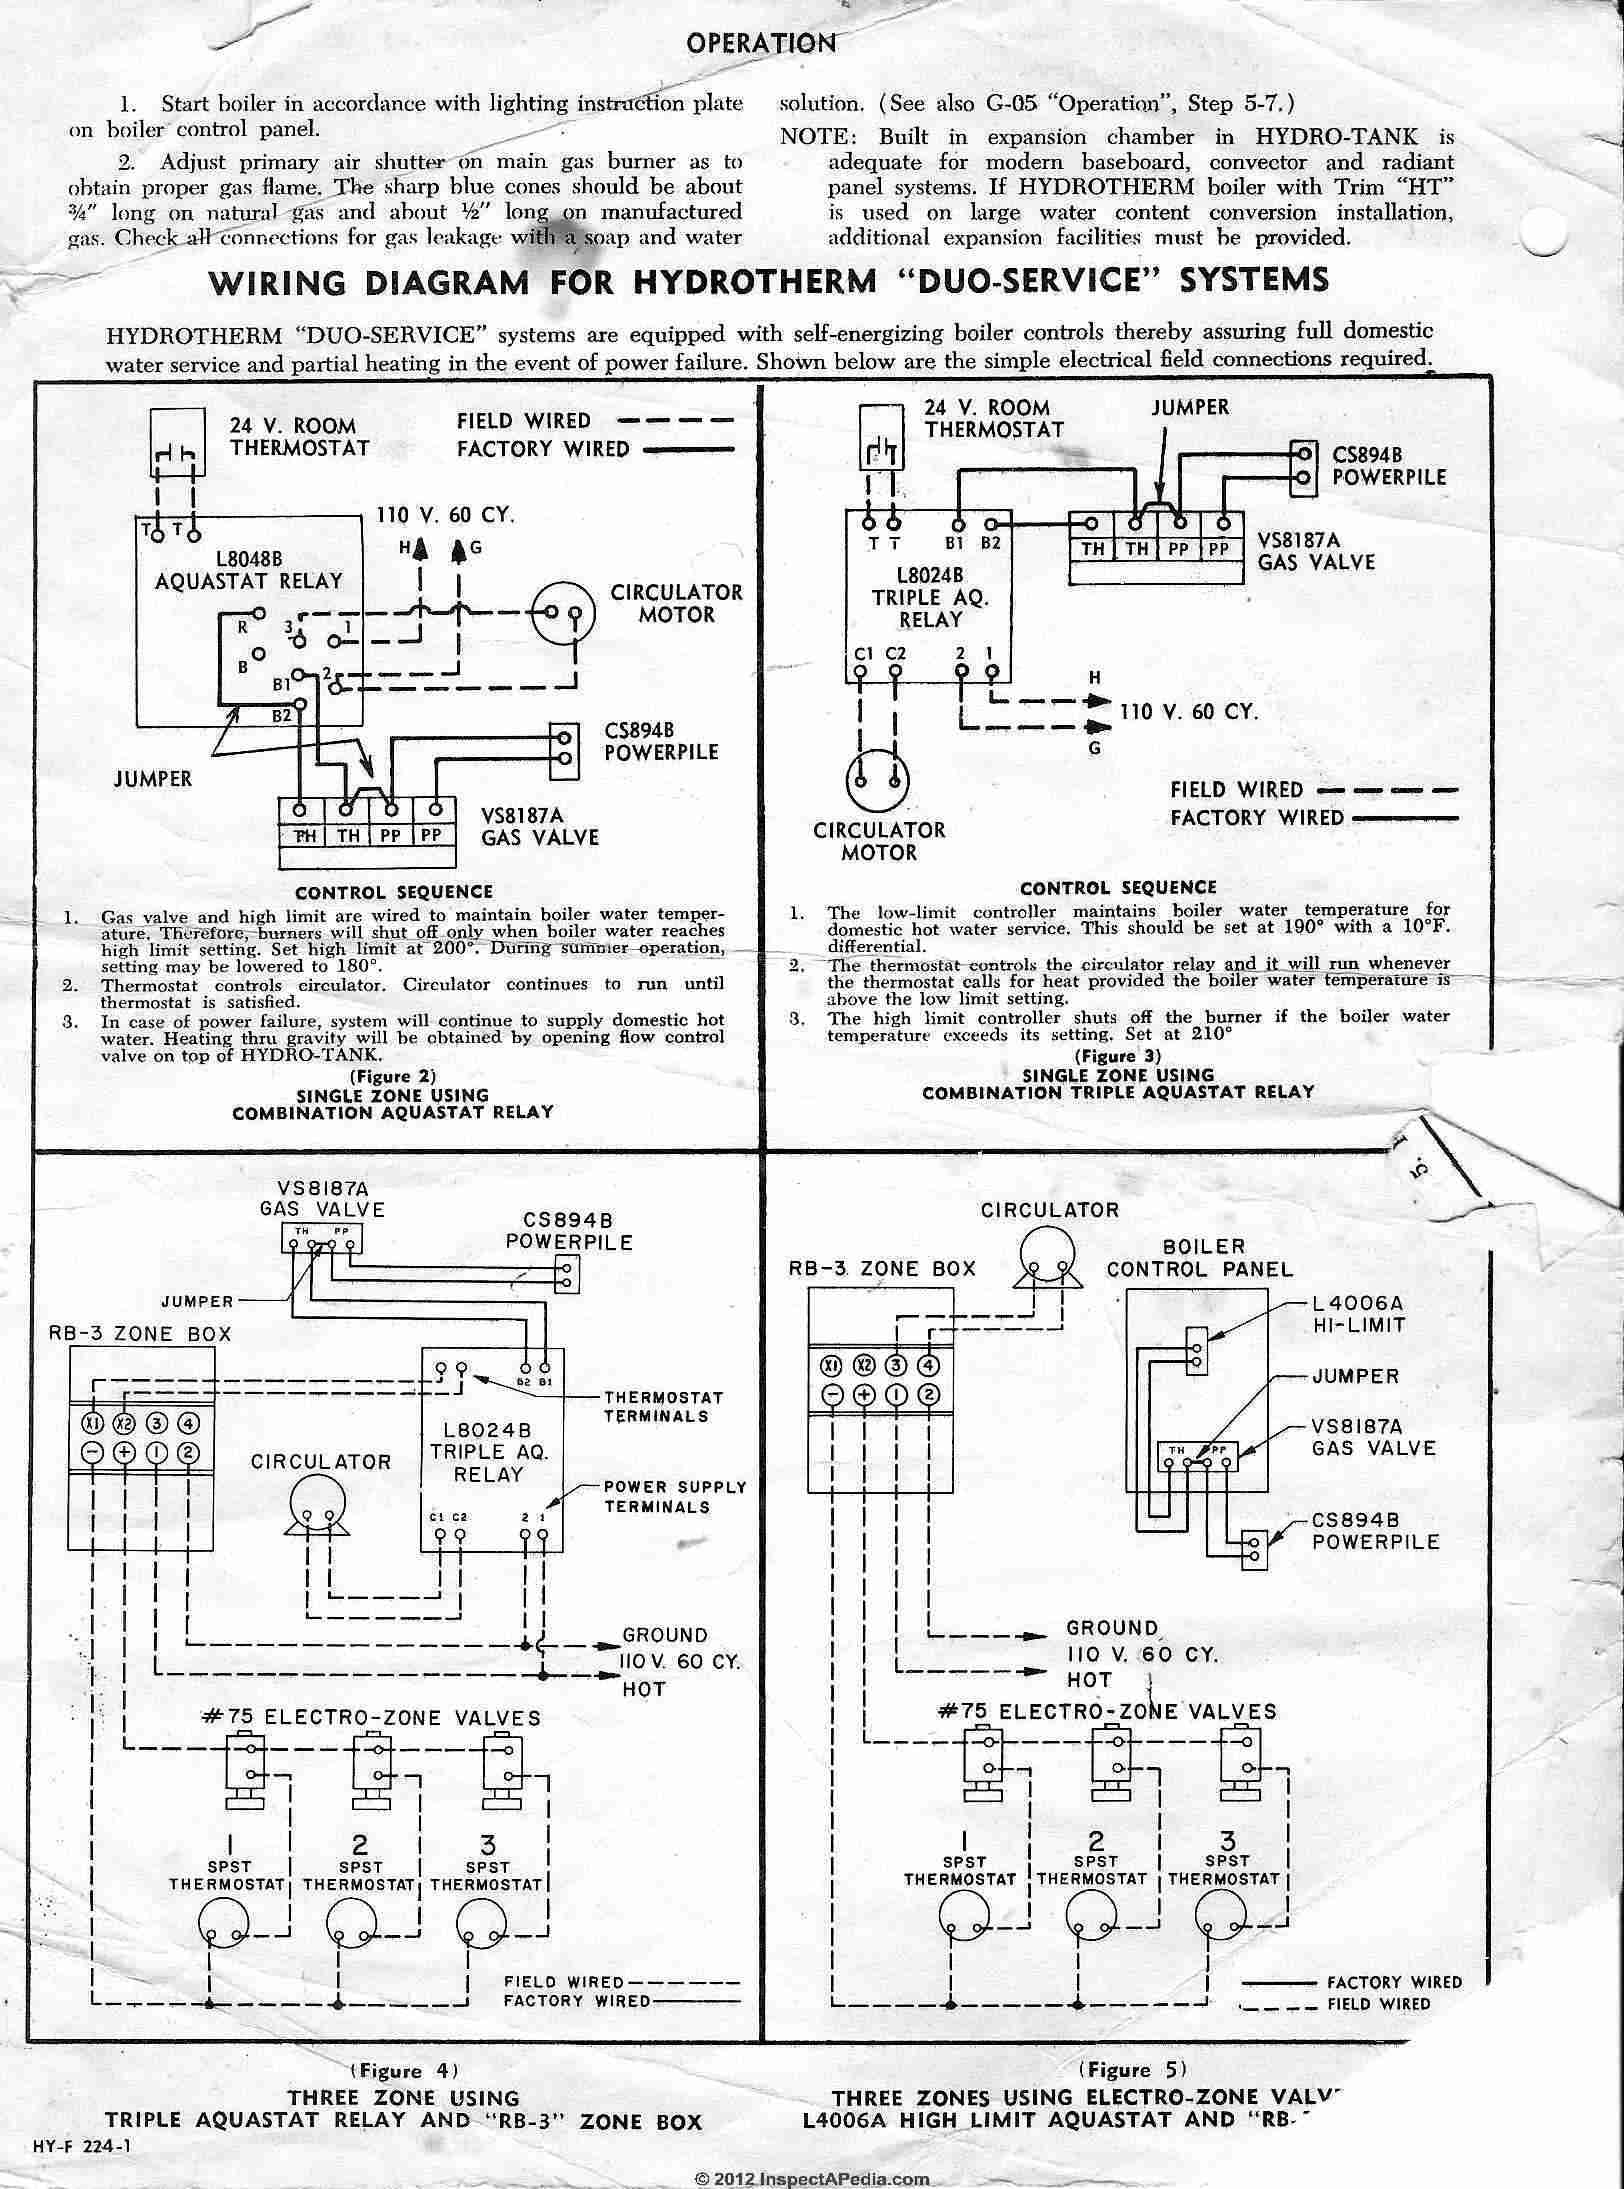 thermal zone wiring diagram heating boiler aquastat control diagnosis troubleshooting repair honeywell l8024b aquastat wiring instructions